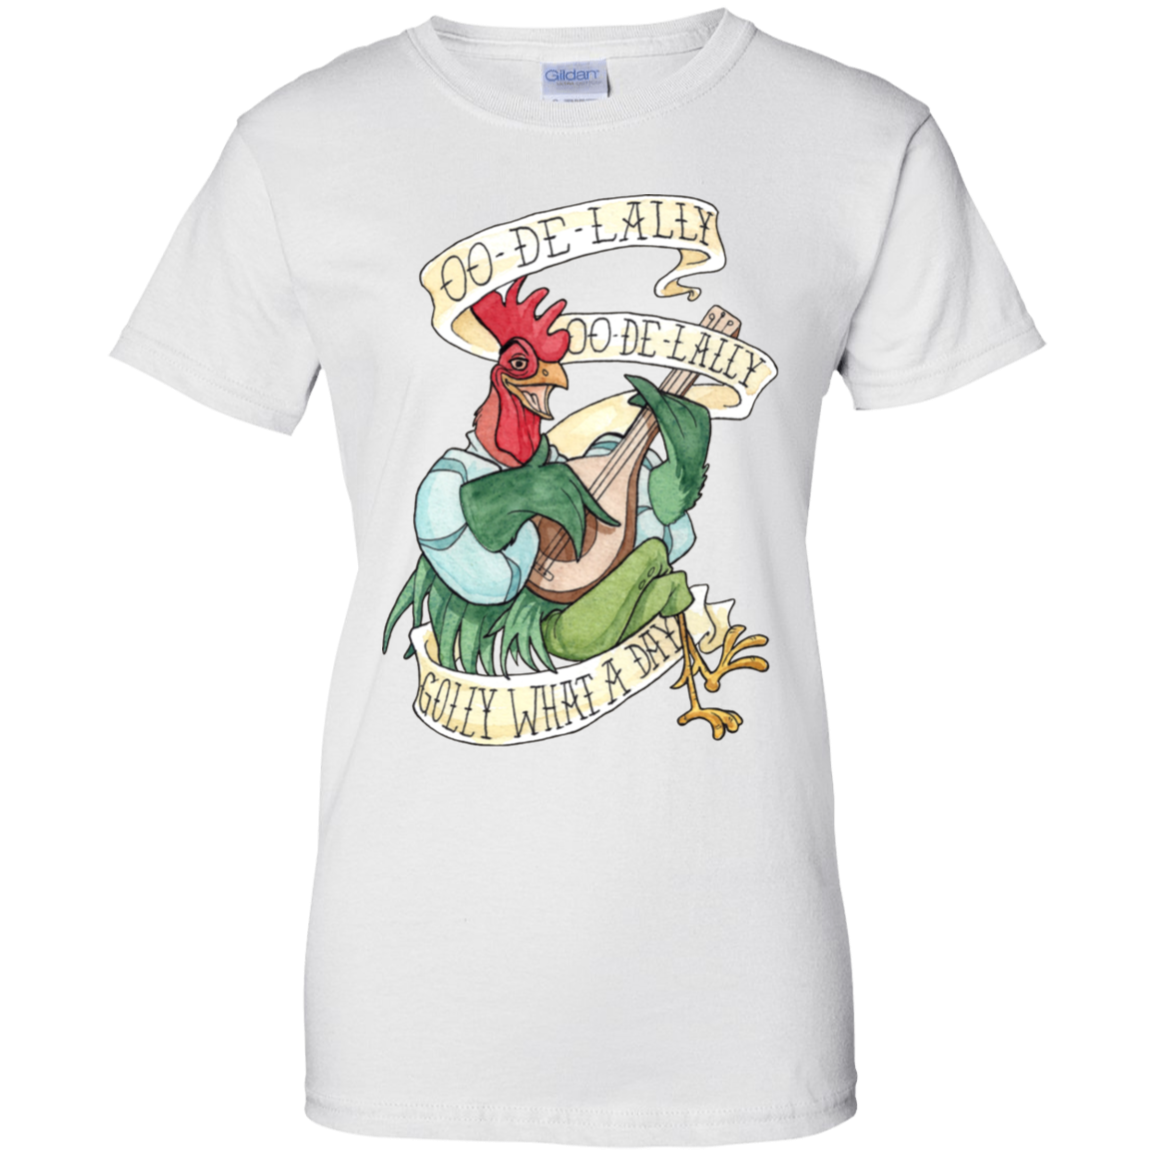 Alan-a-dale Rooster – Oo-de-lally Golly What A Day Watercolor Painting Gildan Ladies' 100% Cotton T-Shirt